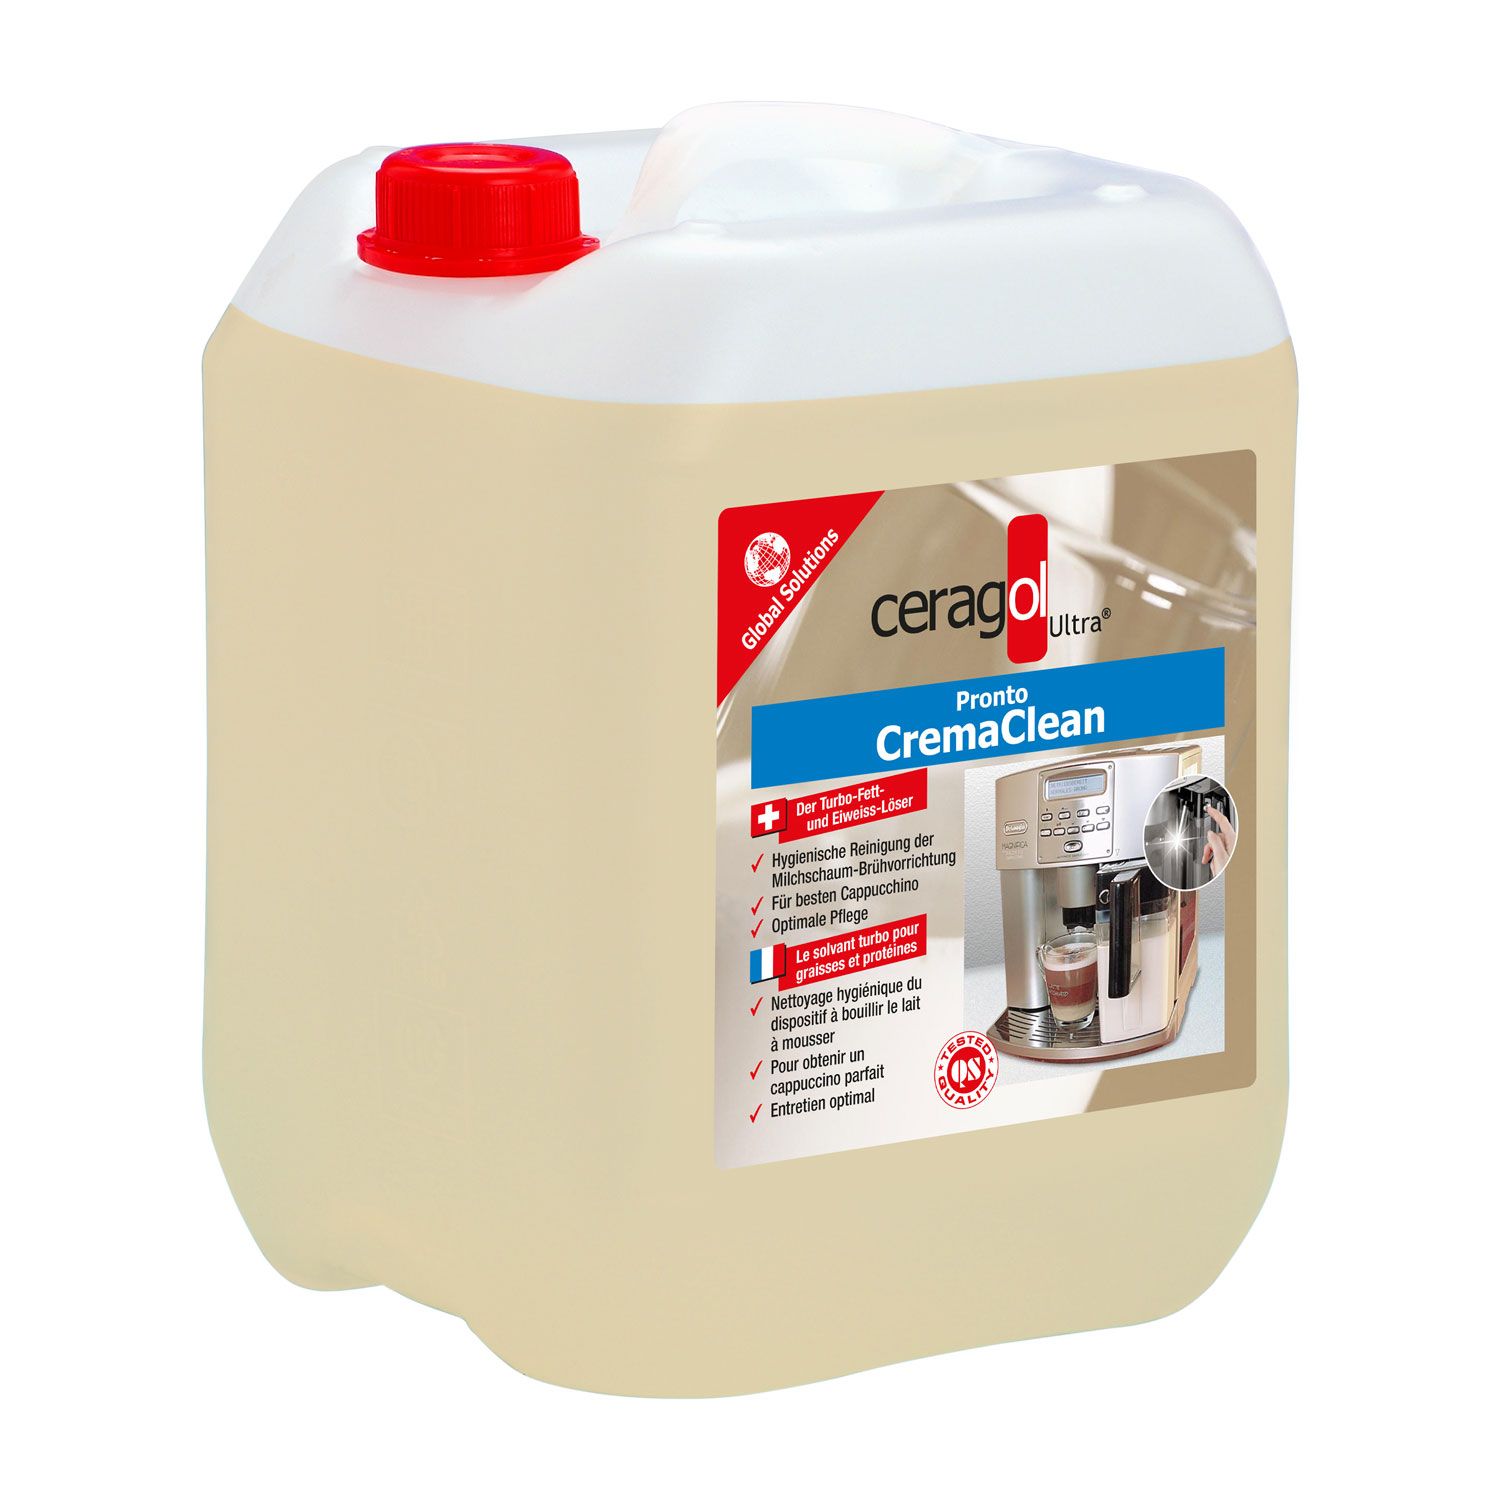 Pronto CremaClean - Kanister - 10l